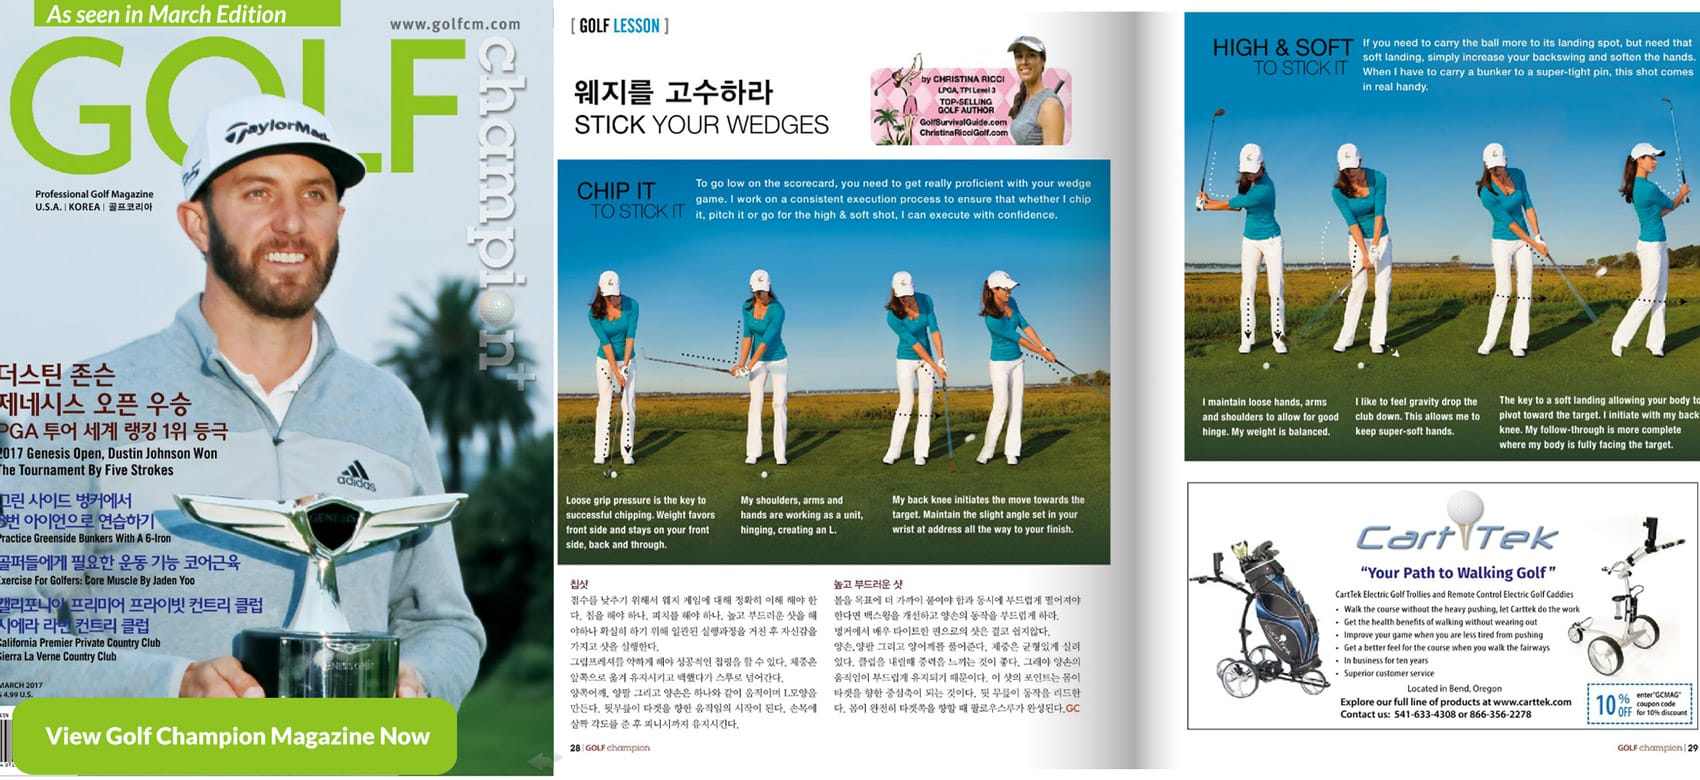 ChampionGolf-MarchEdition-Wedges